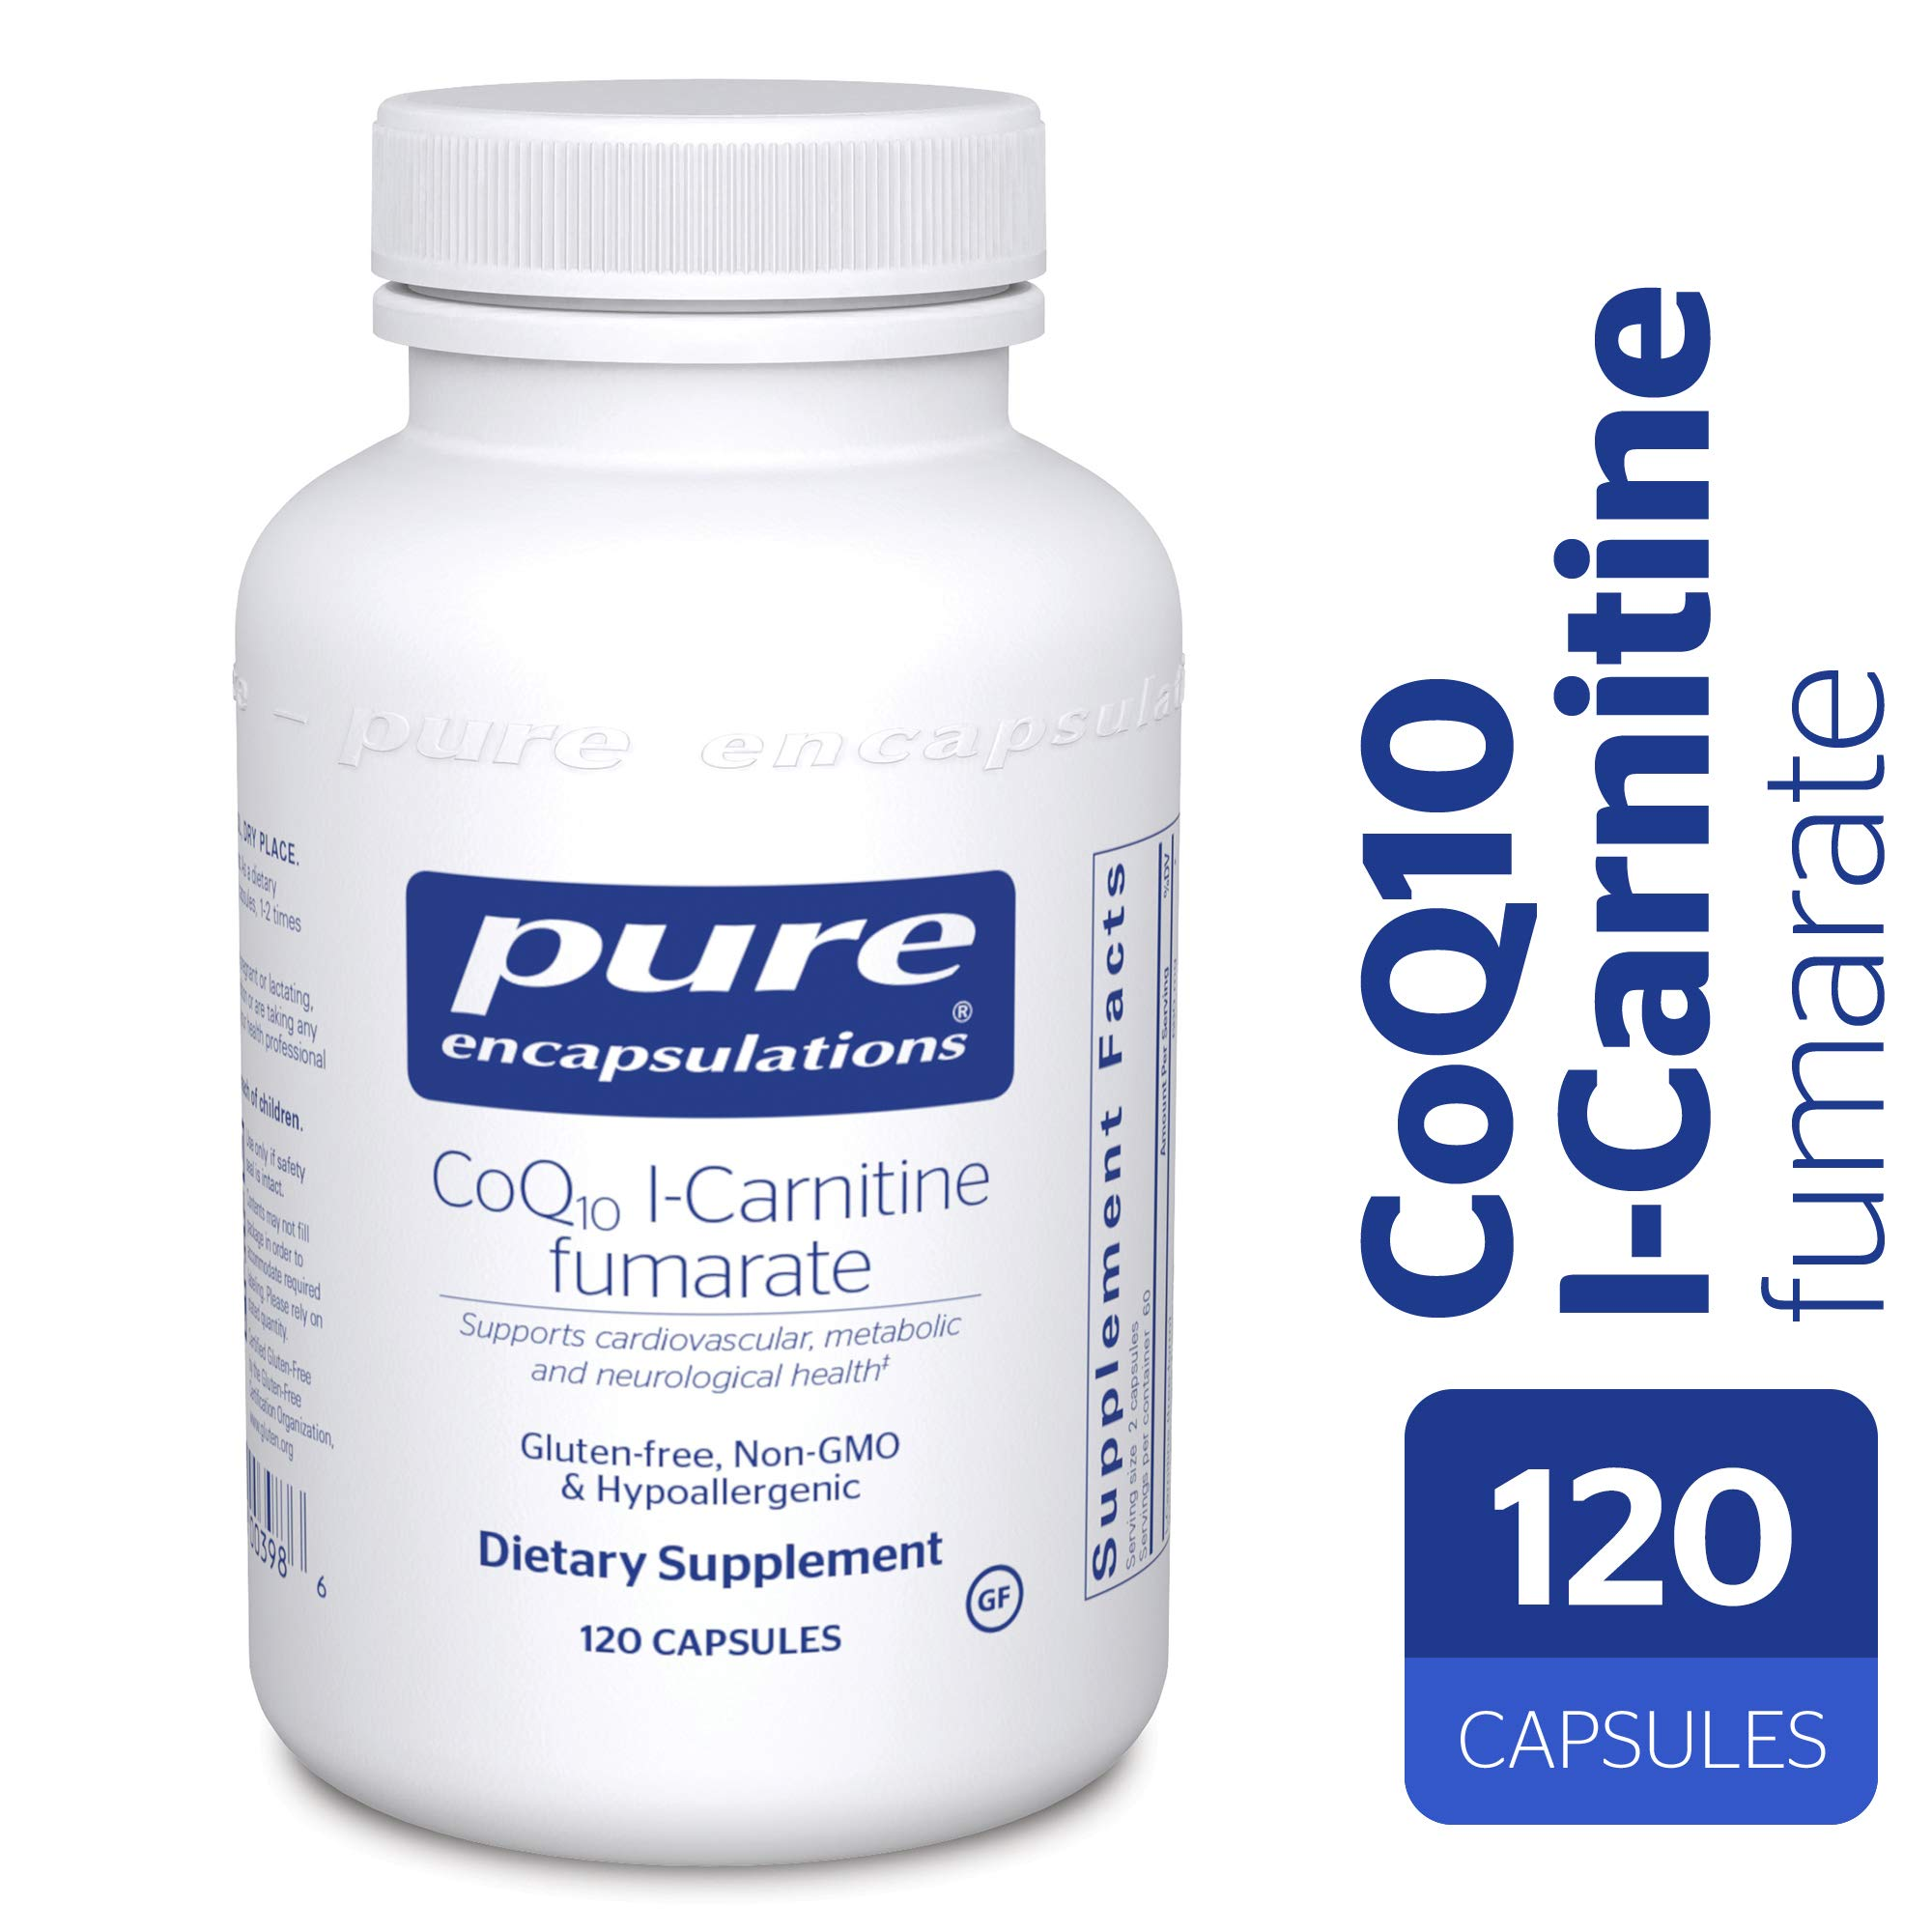 Pure Encapsulations - CoQ10 l-Carnitine Fumarate - Ultra-Charged Cardiovascular Support* - 120 Capsules by Pure Encapsulations